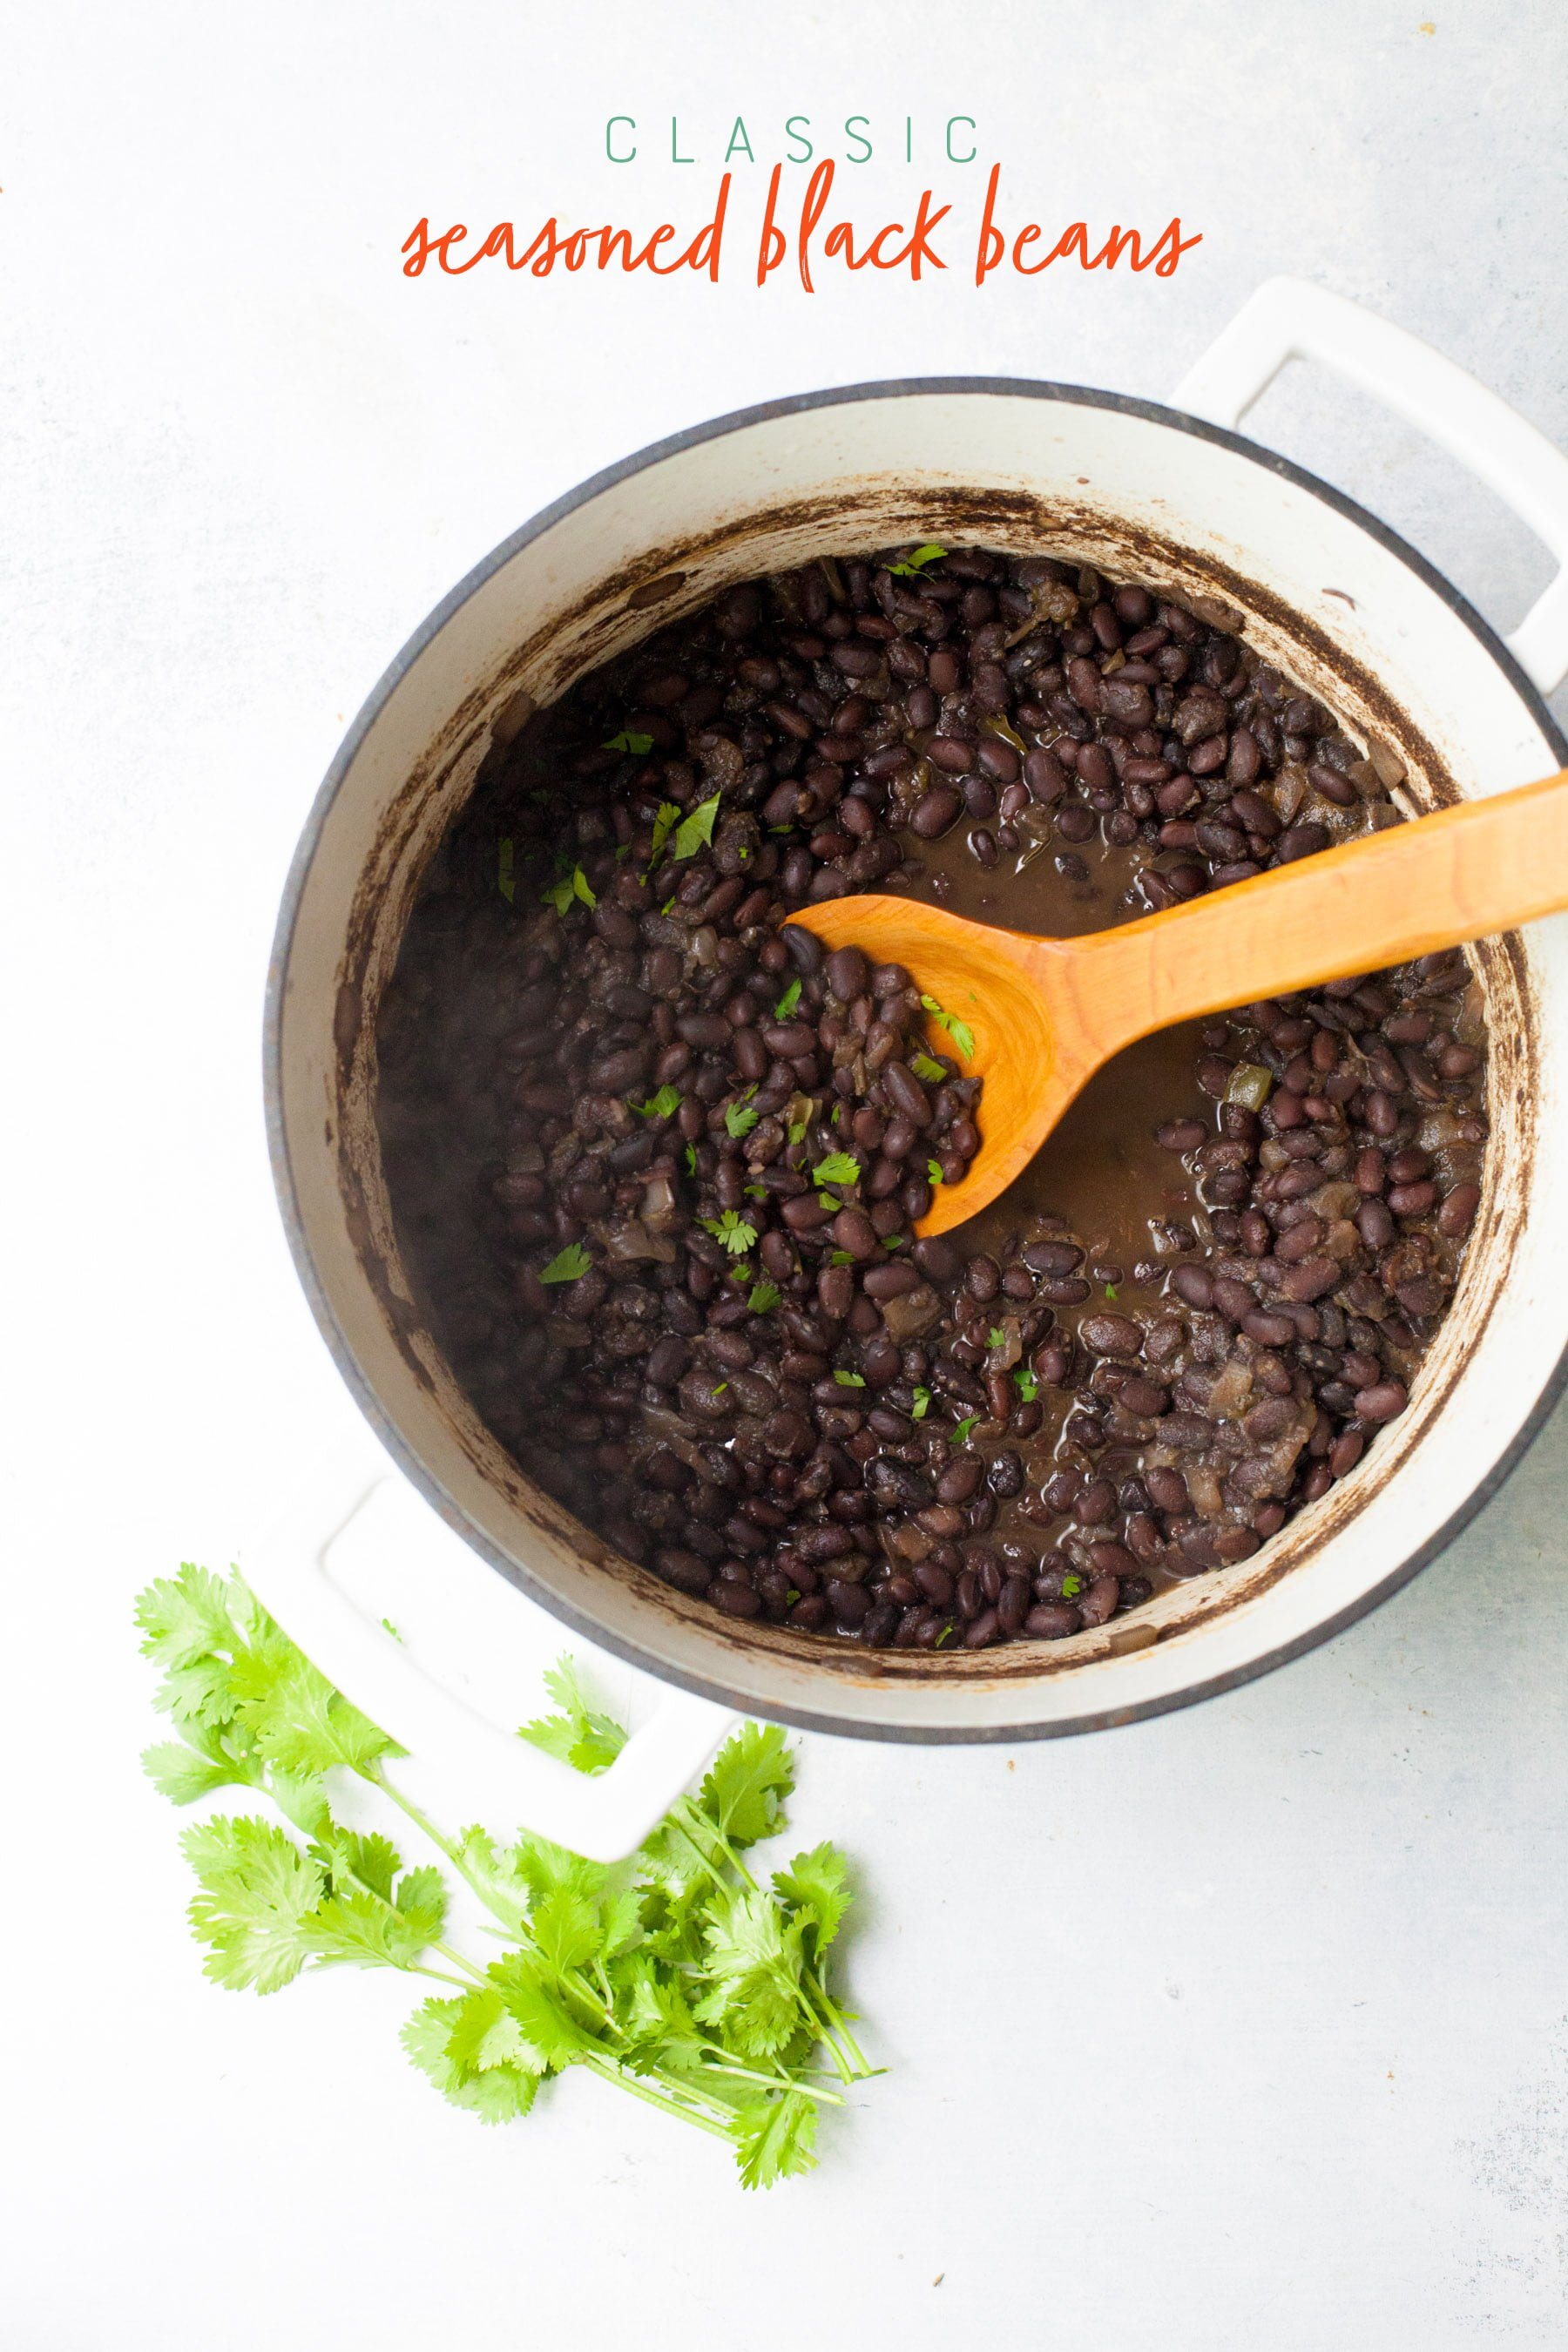 Classic Seasoned Black Beans